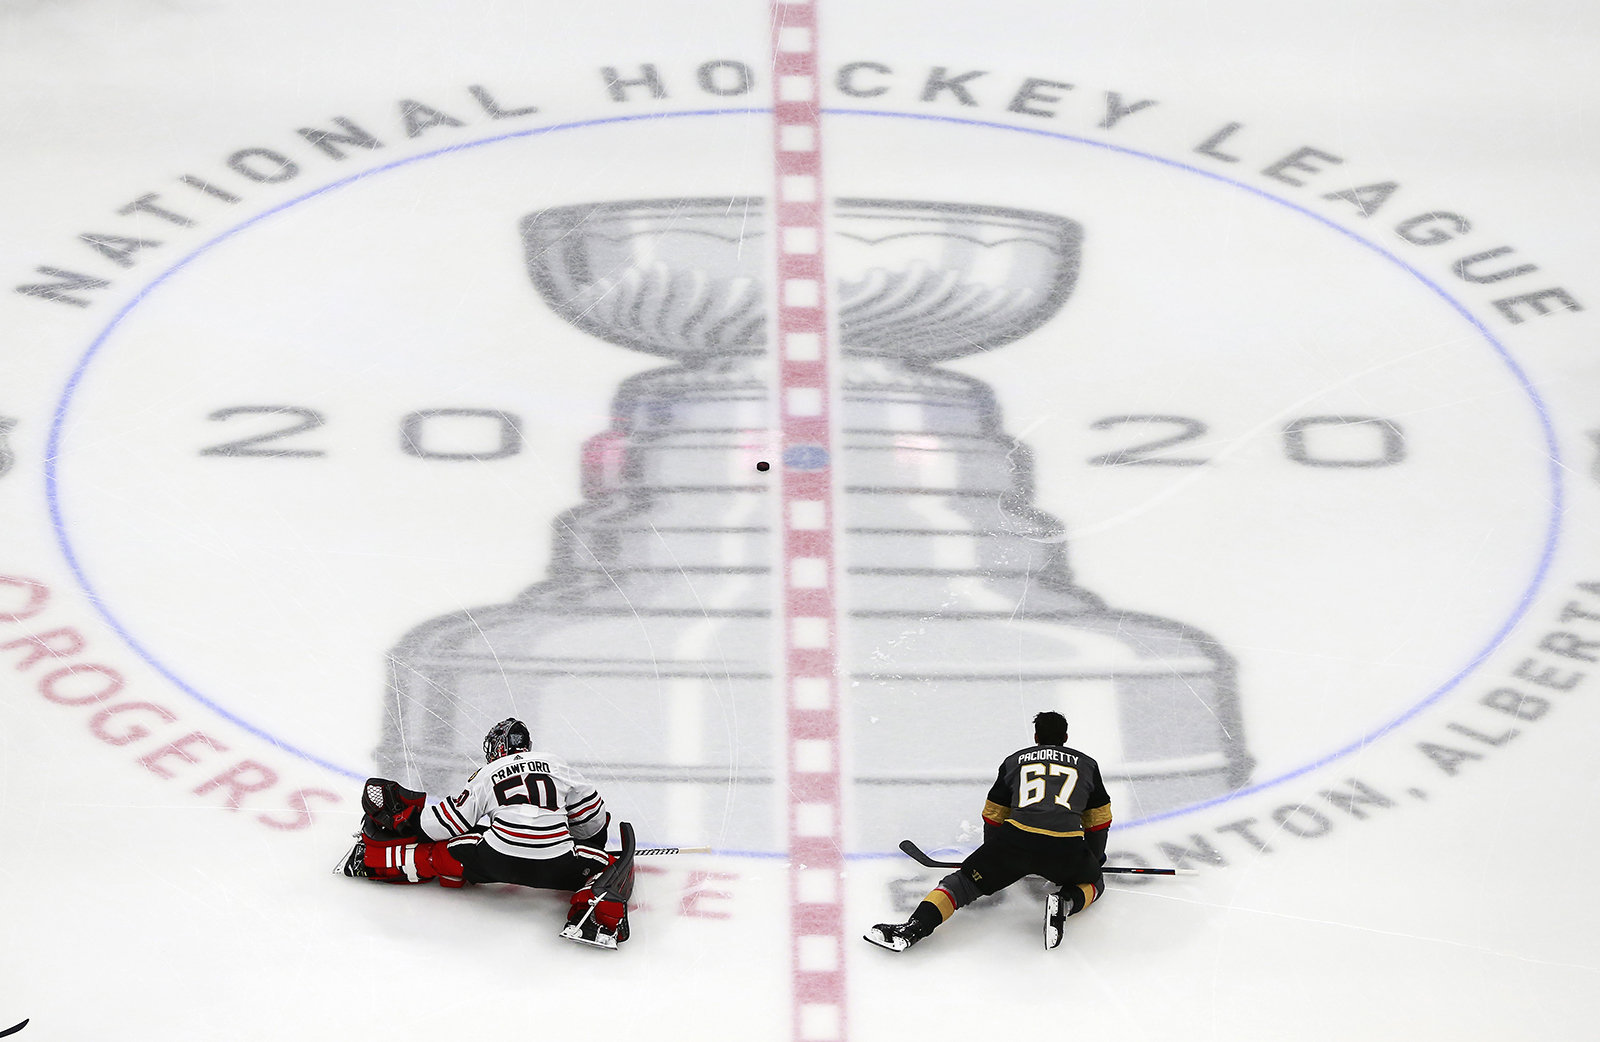 Corey Crawford of the Chicago Blackhawks stretches along with Max Pacioretty of the Vegas Golden Knights before the start of Game One of the Western Conference First Round during the 2020 NHL Stanley Cup Playoffs at Rogers Place on August 11, in Edmonton, Alberta.